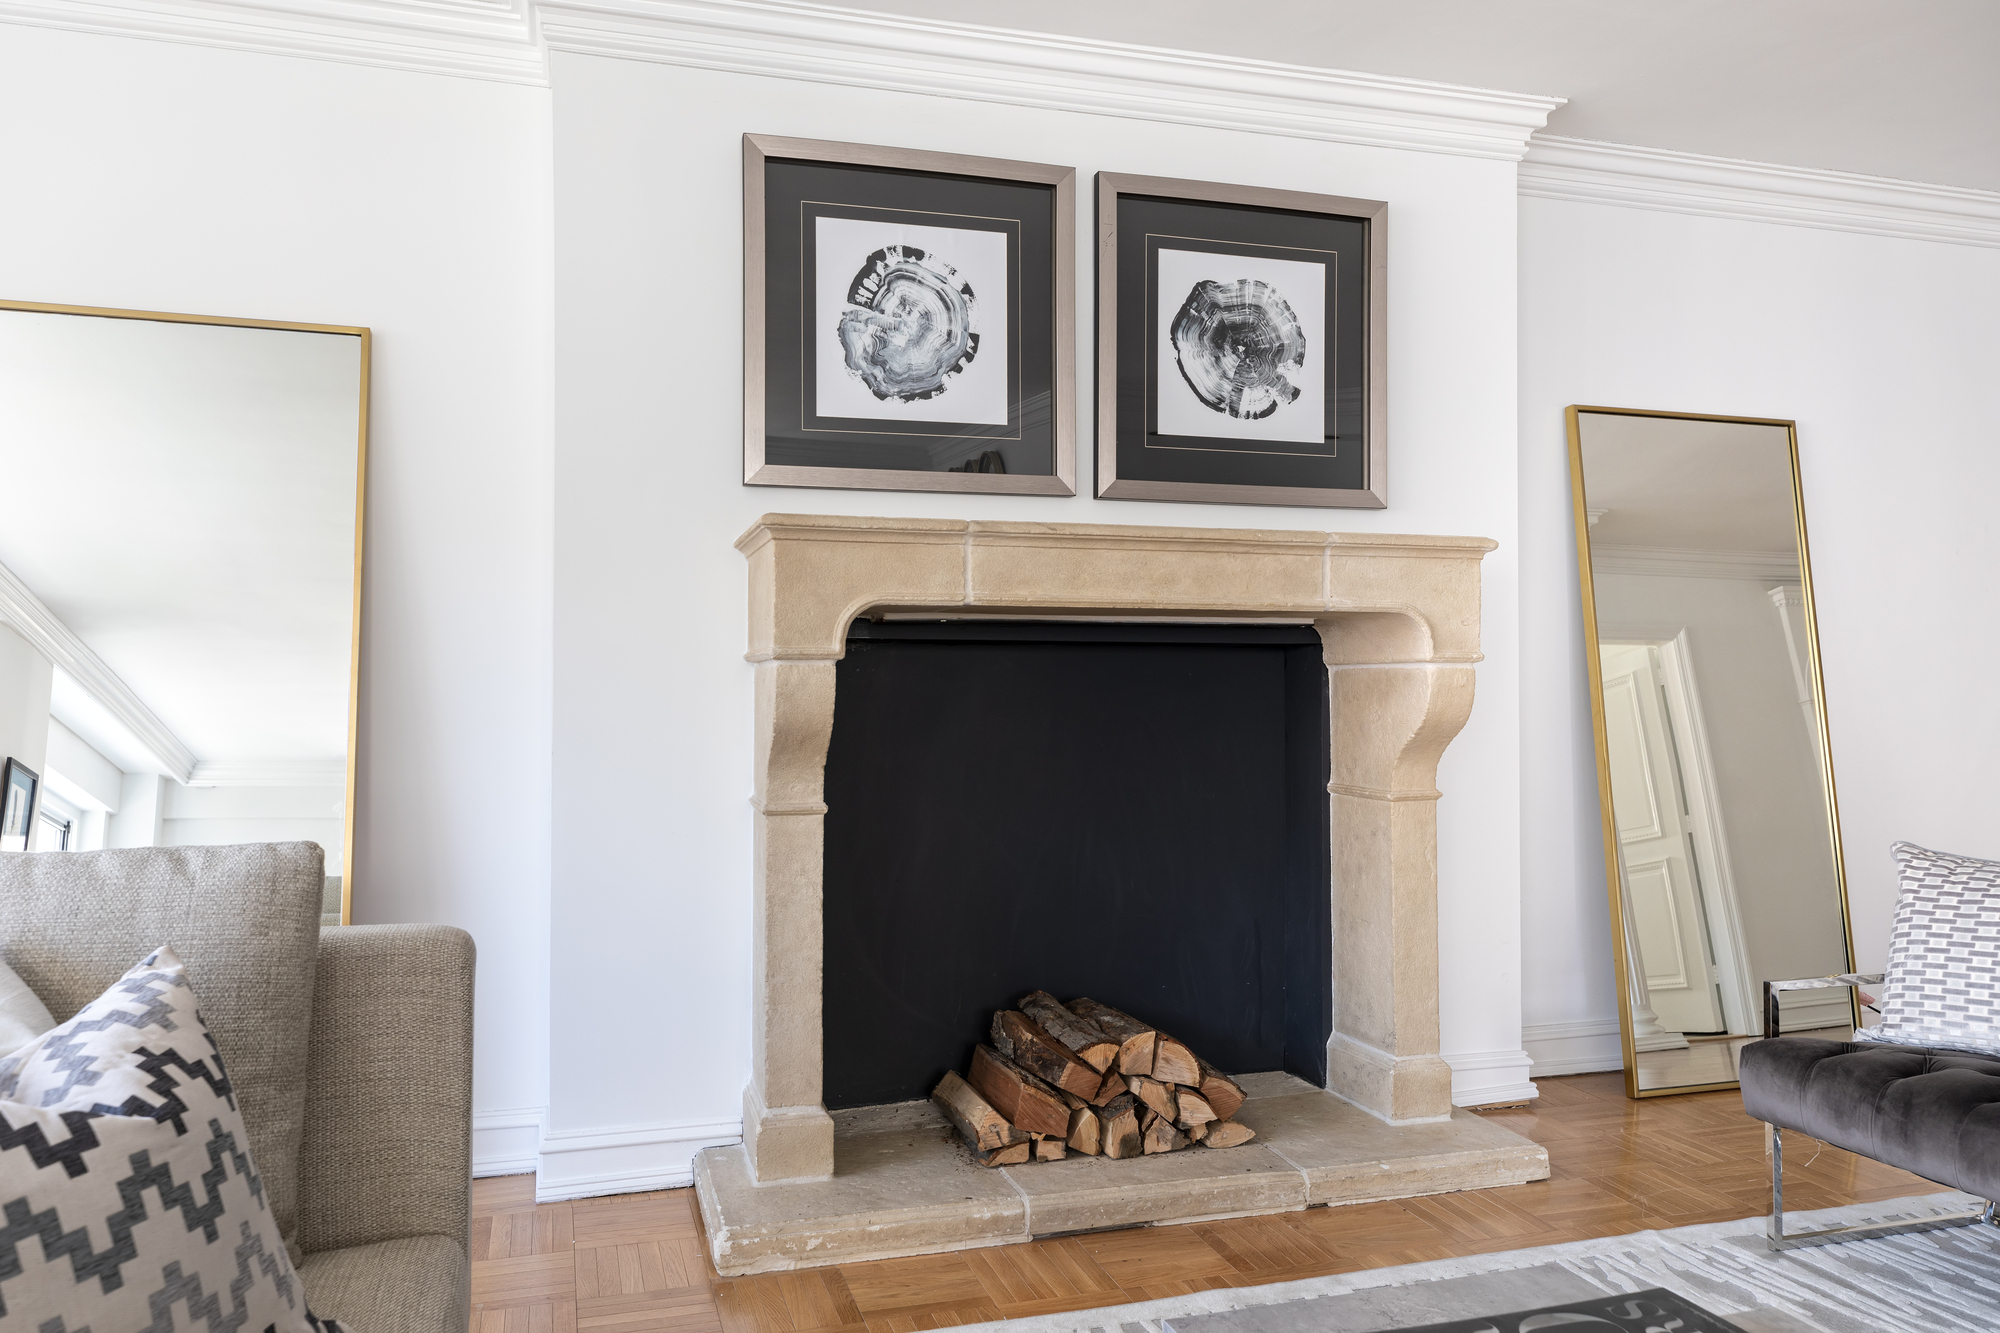 Cozy elements like a wood burning fire or stove help create a sense of holiday charm.